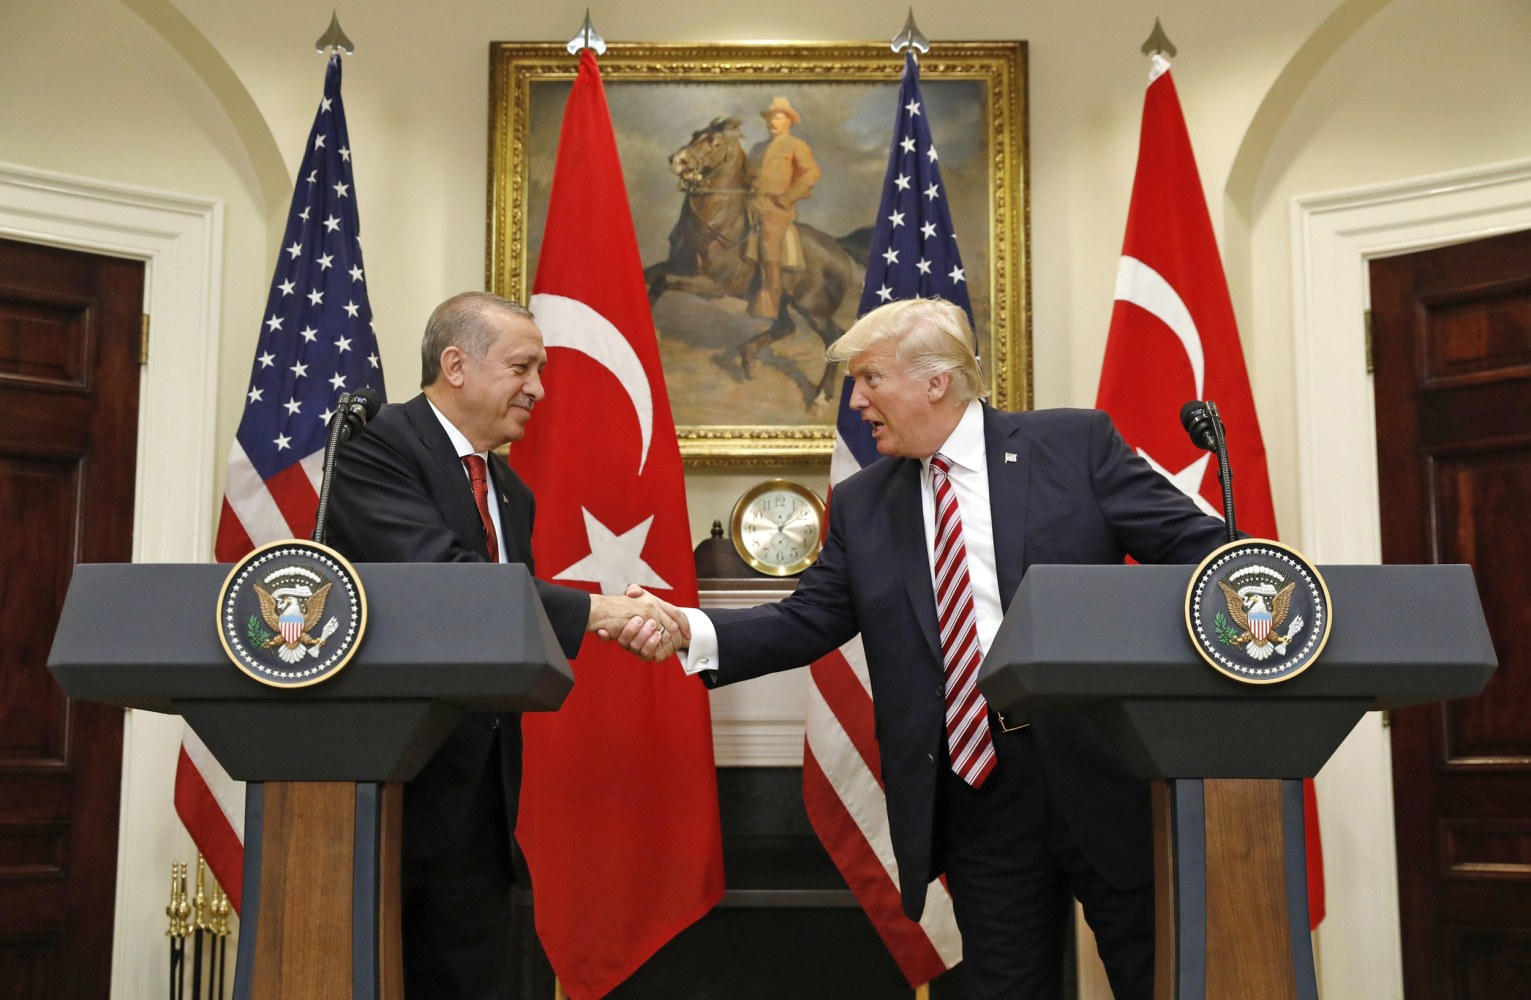 Trump, Erdogan seek to strengthen ties: White House